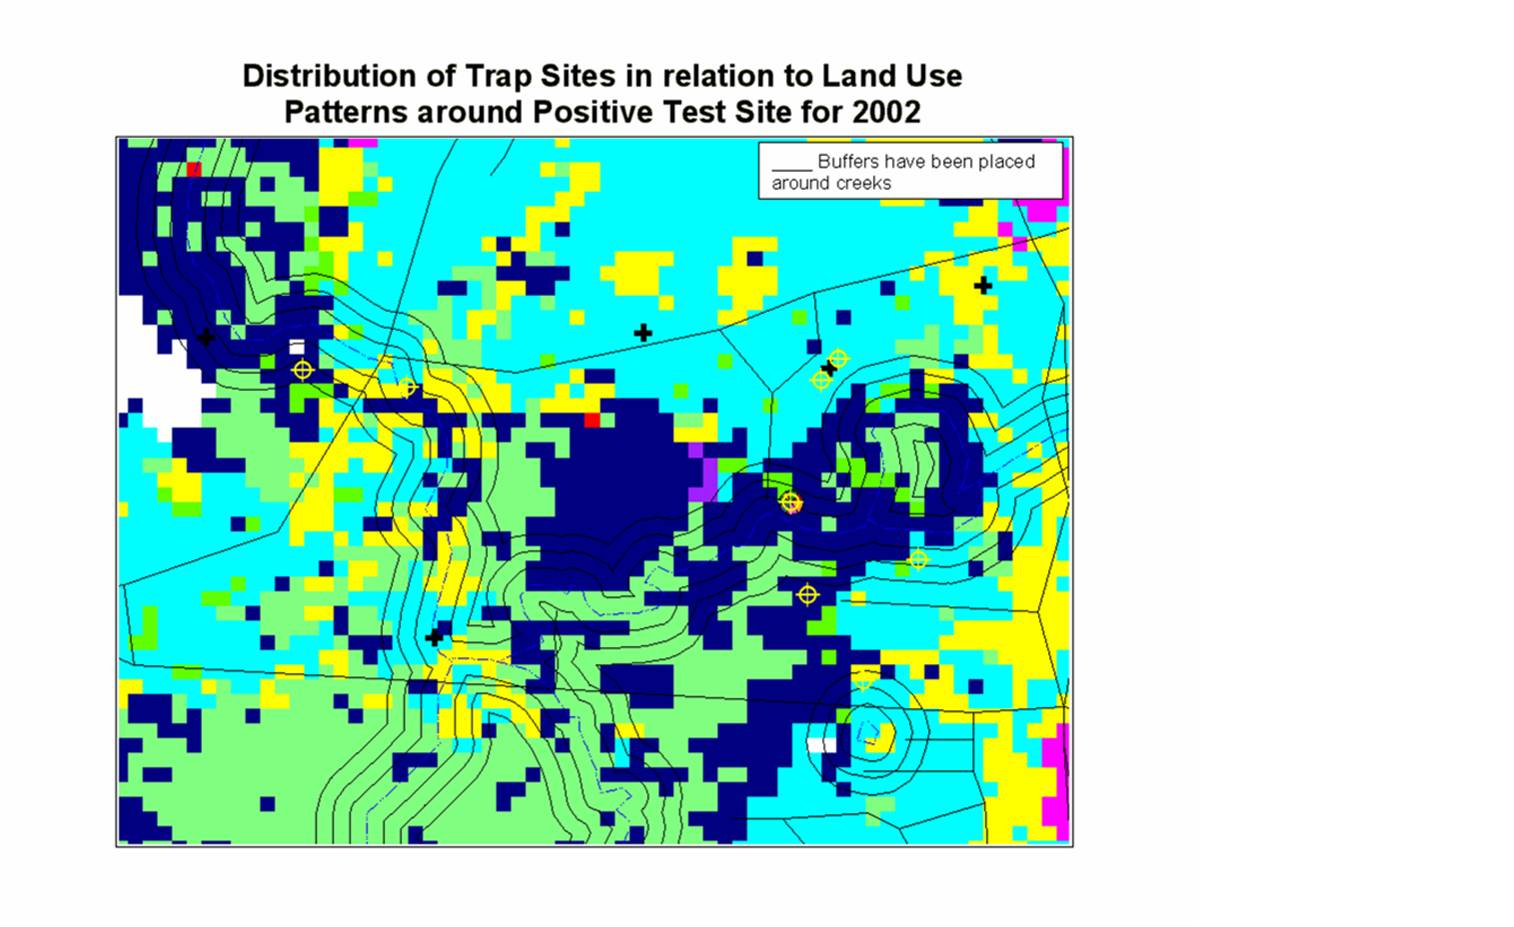 NLCD Interpretation of Land Use for the Positive Test site of 2002,2003